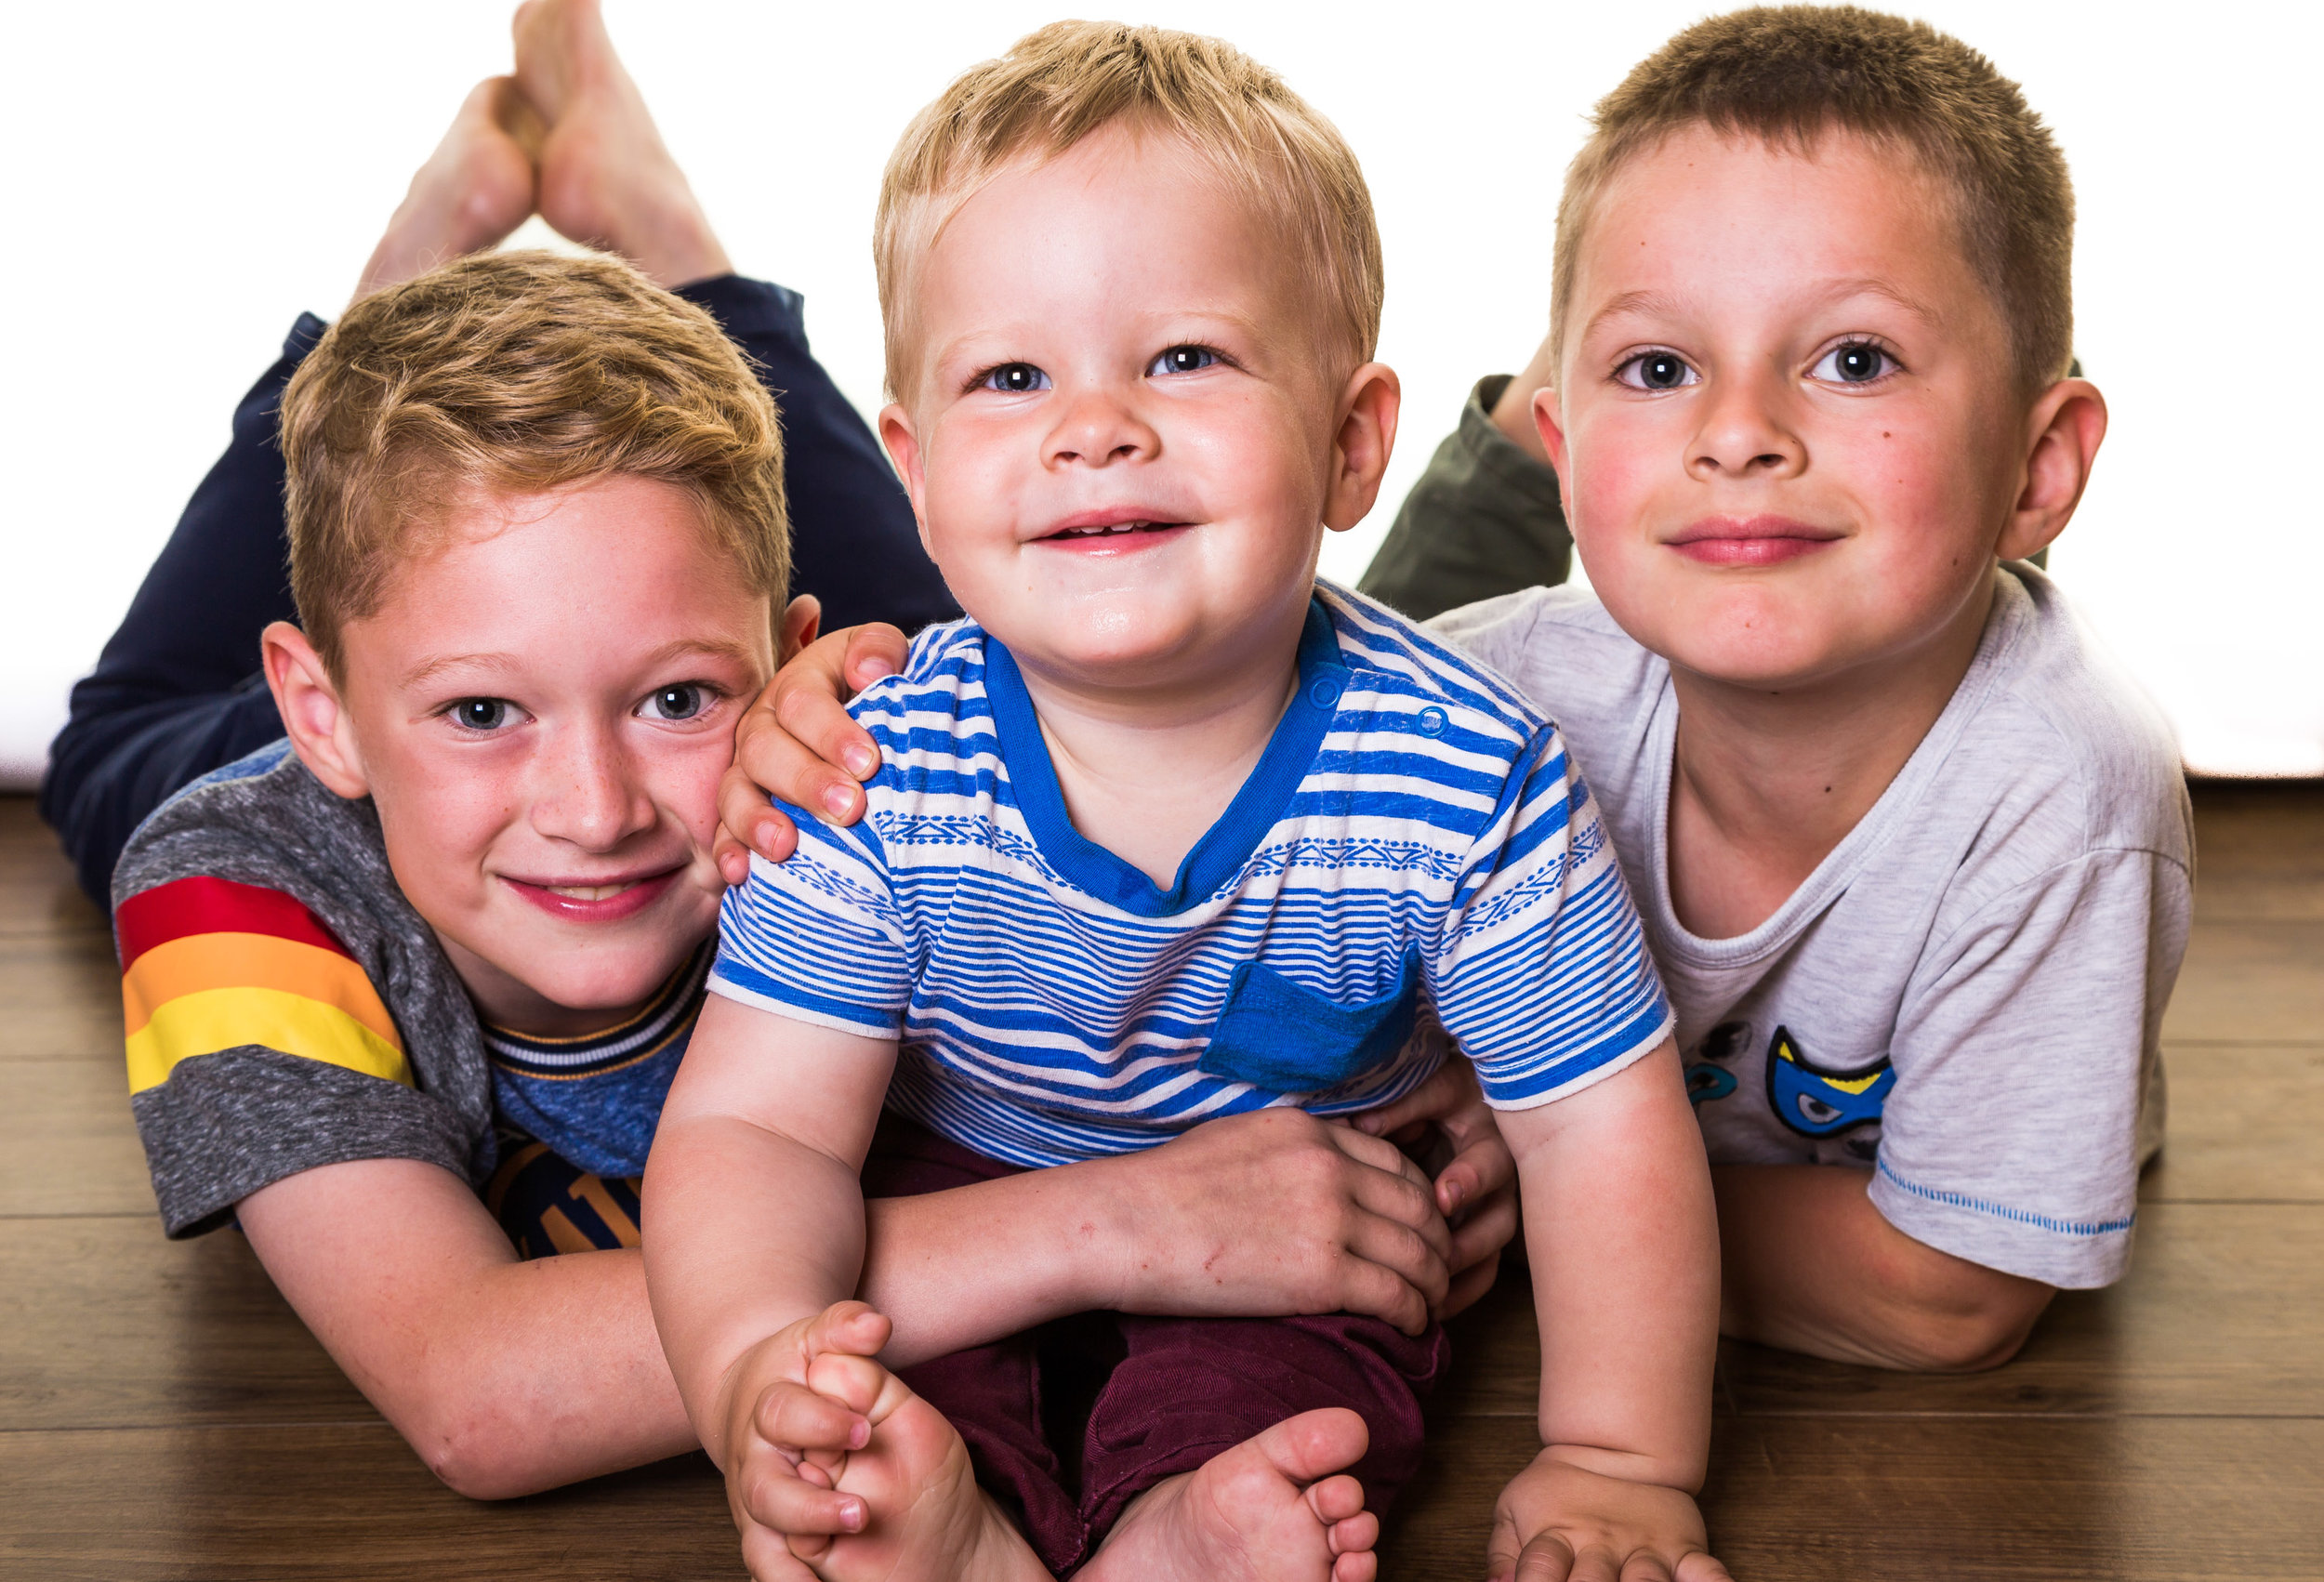 The Lee's - This family also opted for our home studio in order to take some family photographs.